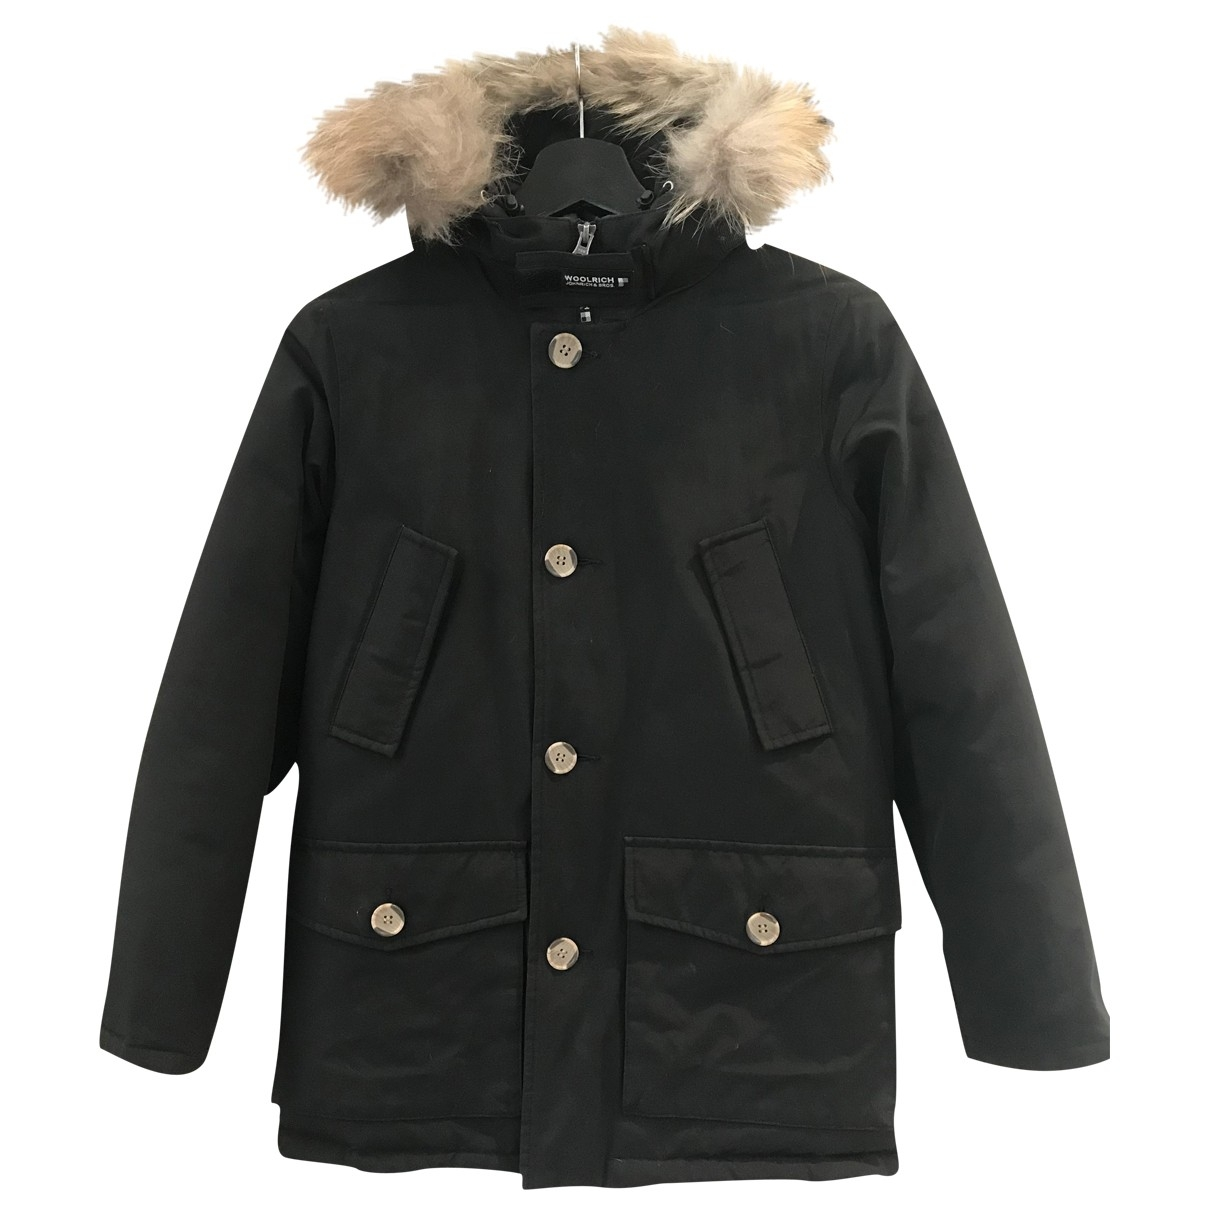 Woolrich \N Black Cotton jacket & coat for Kids 10 years - until 56 inches UK